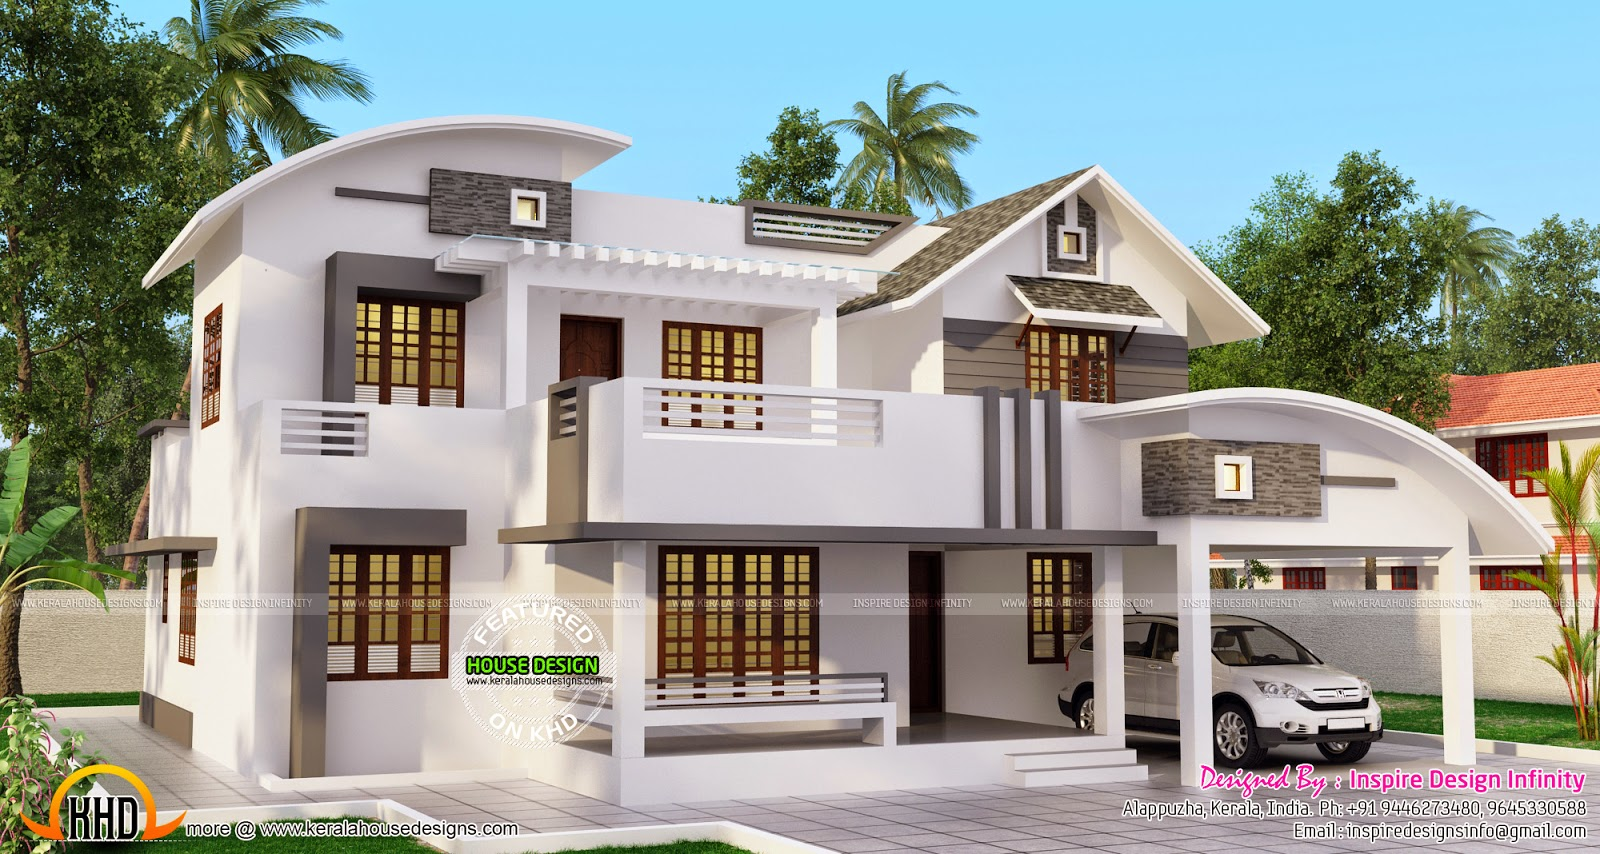 Double storied modern home kerala home design and floor for Innovative house plans designs